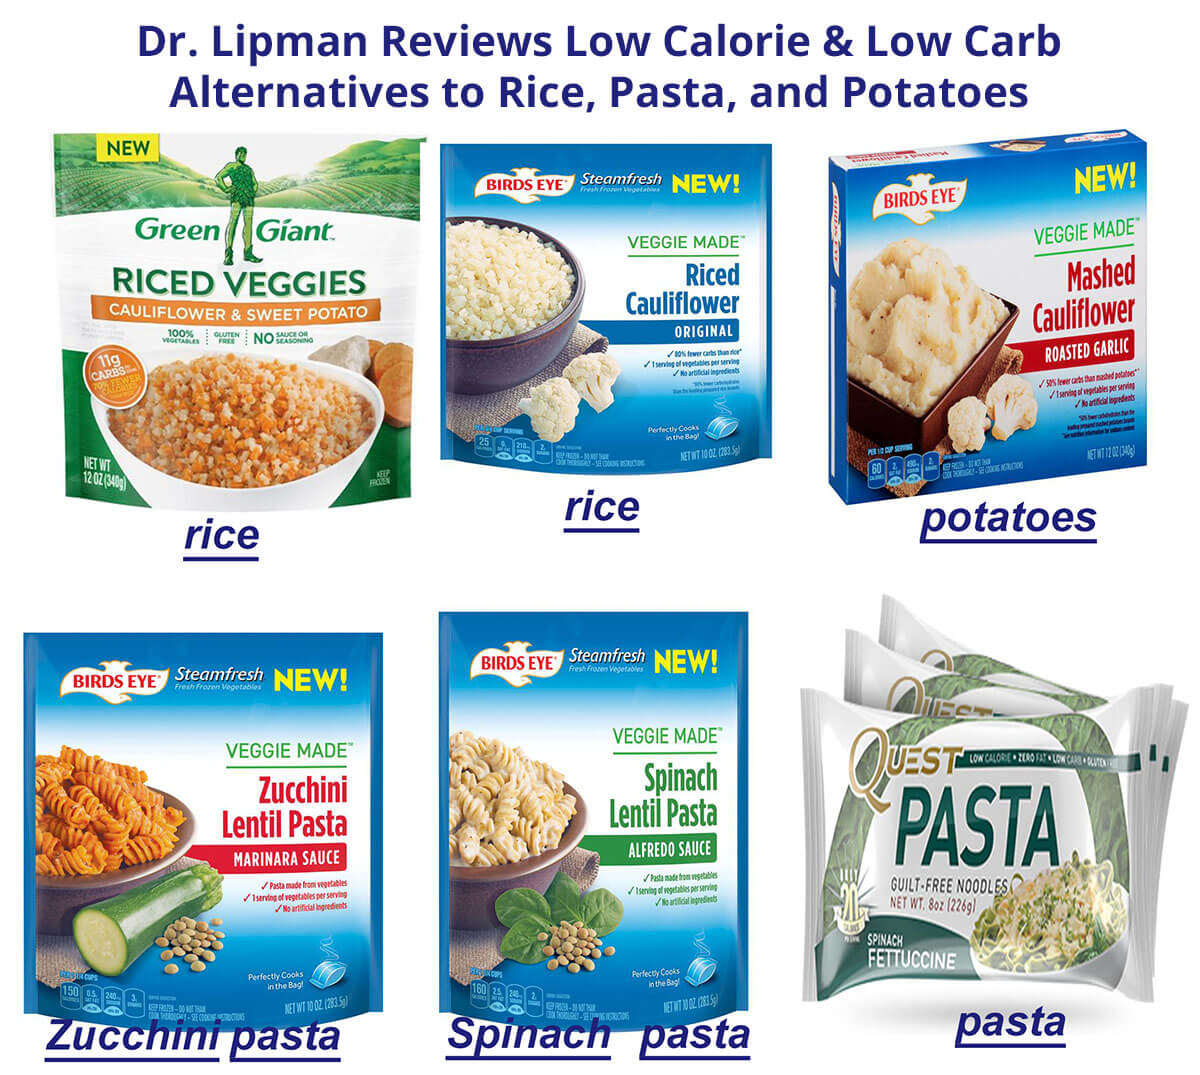 Low calorie, low carb replacement products